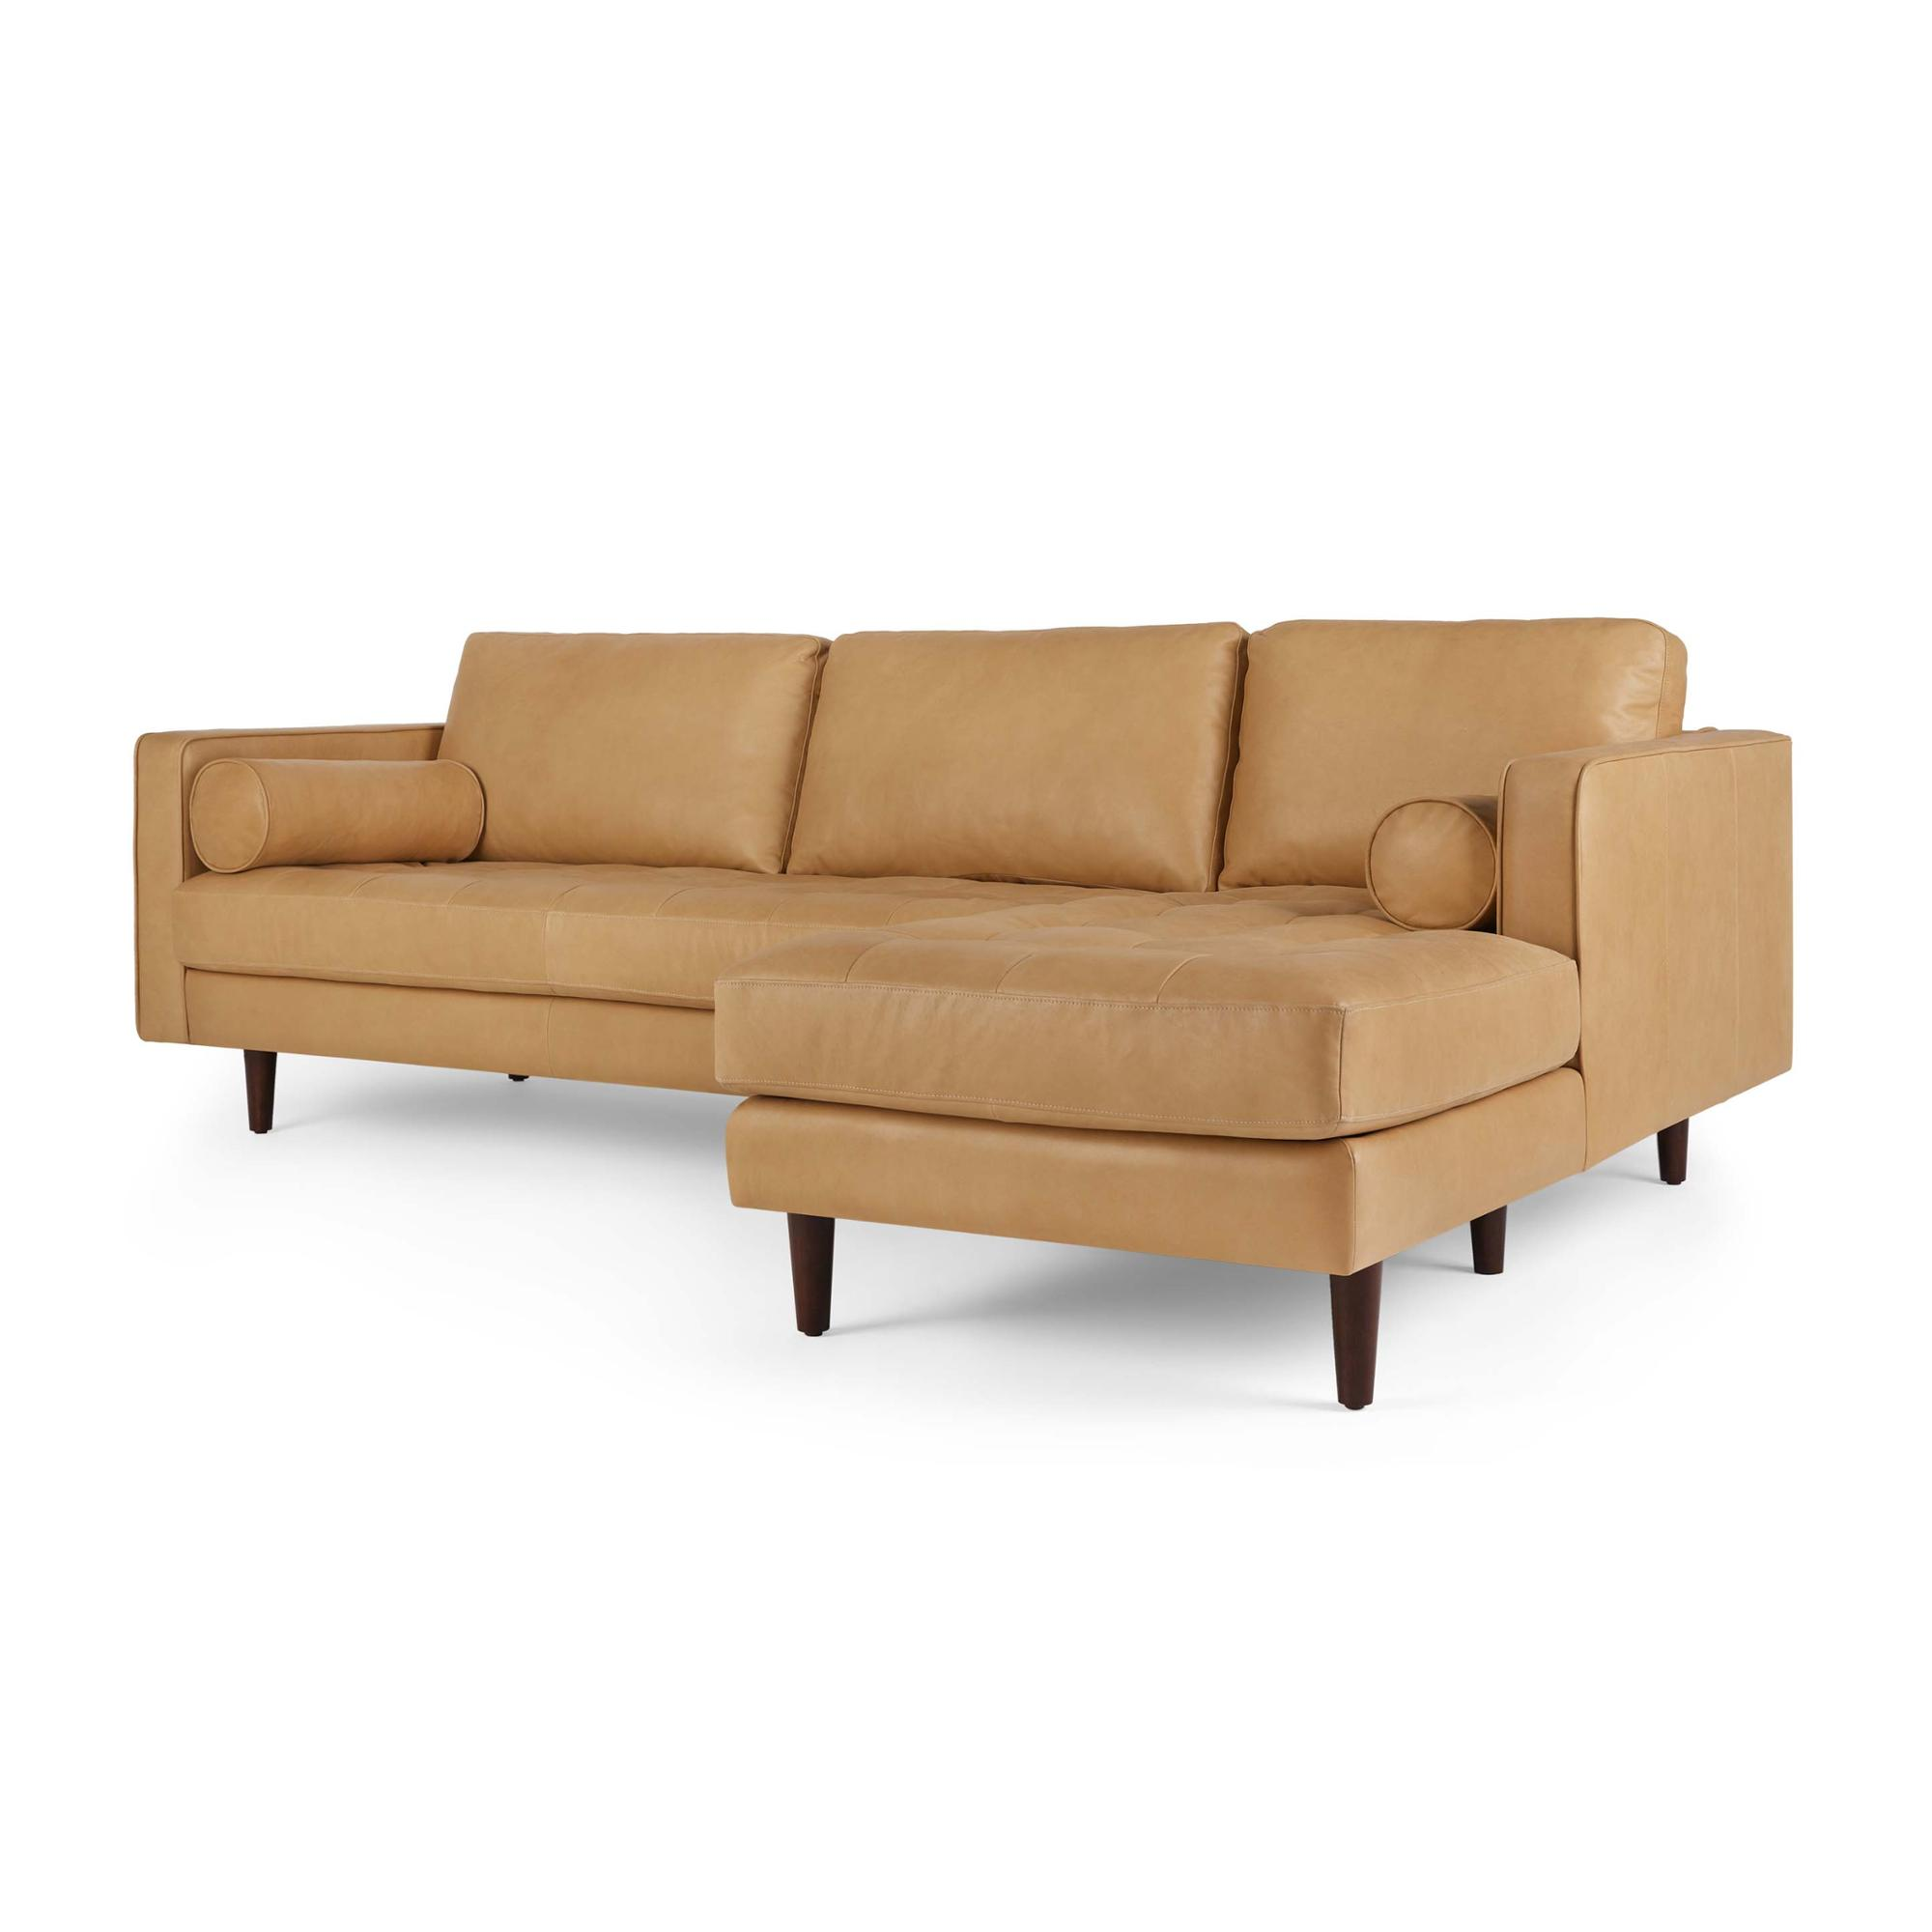 Fantastic Wholesale Custom 4 Seater Leather Corner Sofa Buy Corner Sofa Leather Sofa Custom Sofa Product On Alibaba Com Uwap Interior Chair Design Uwaporg